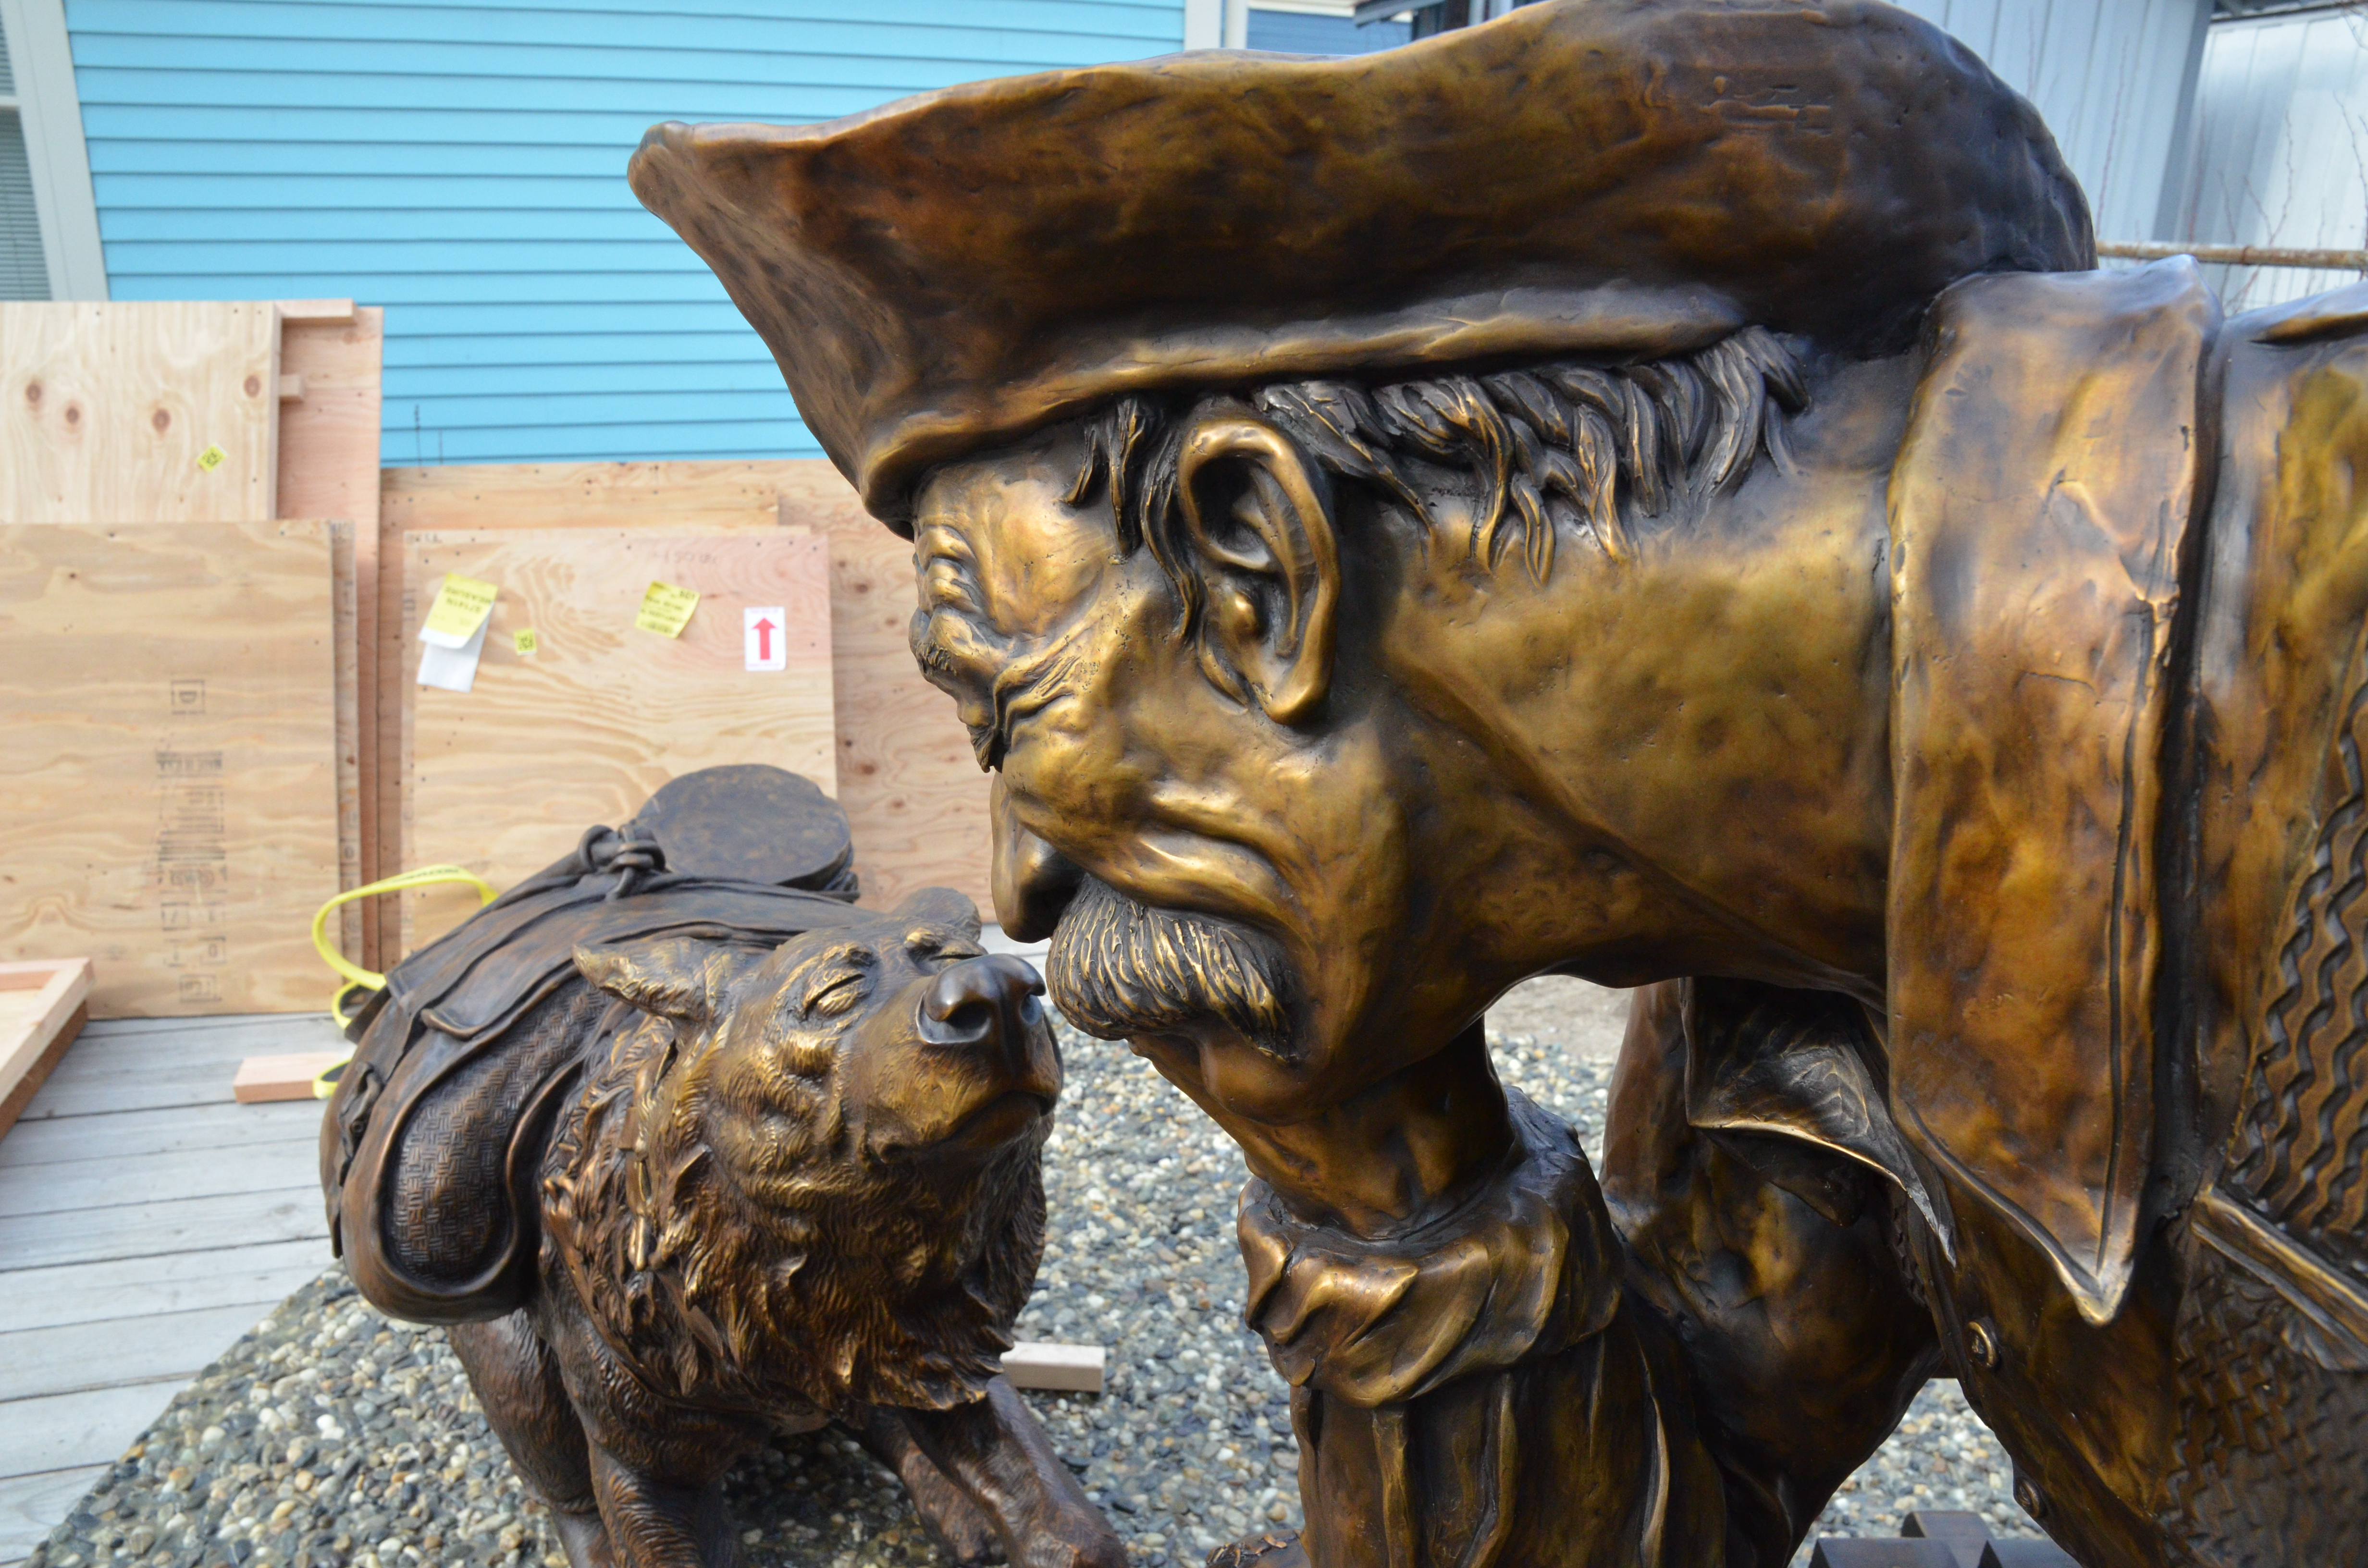 Close photo of bronzed sculpture of a man and a dog